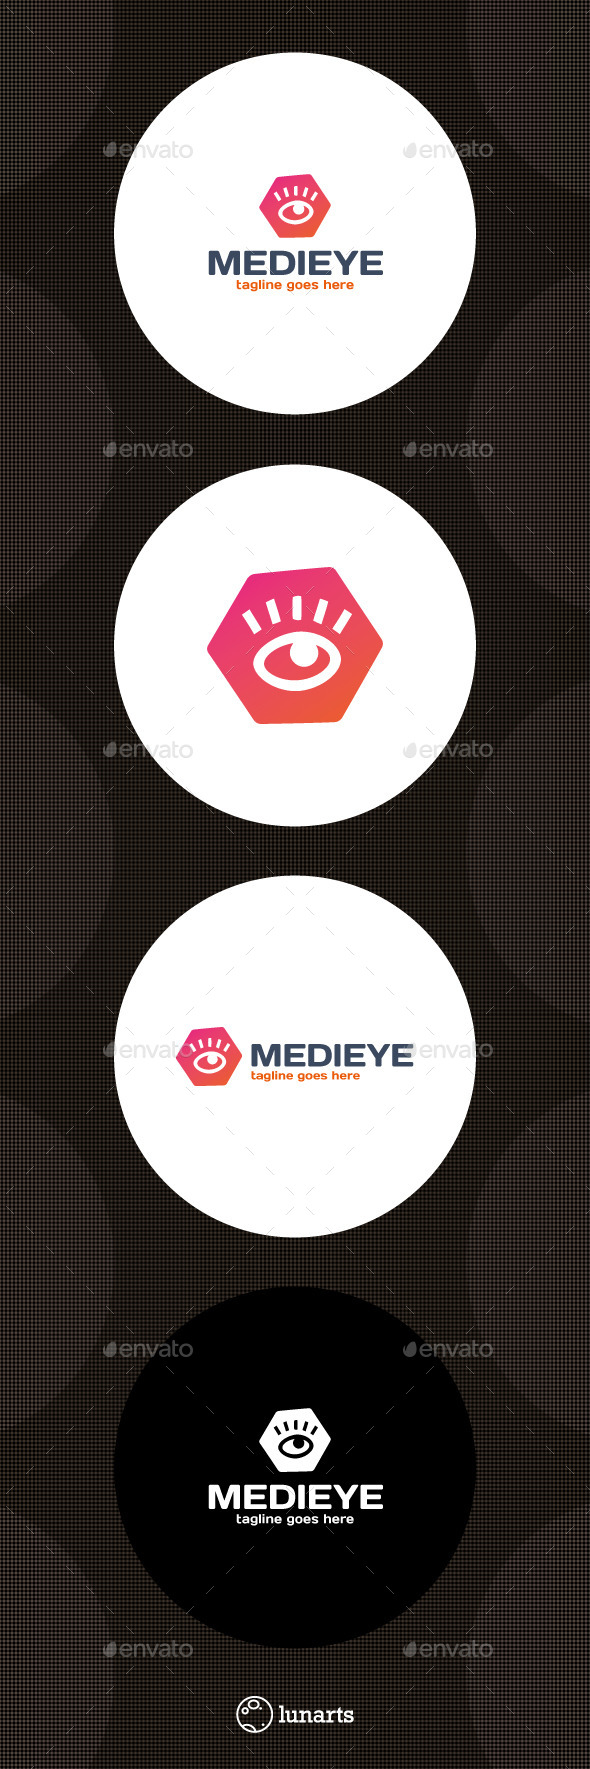 Media Eye Logo - Hexagon - Abstract Logo Templates